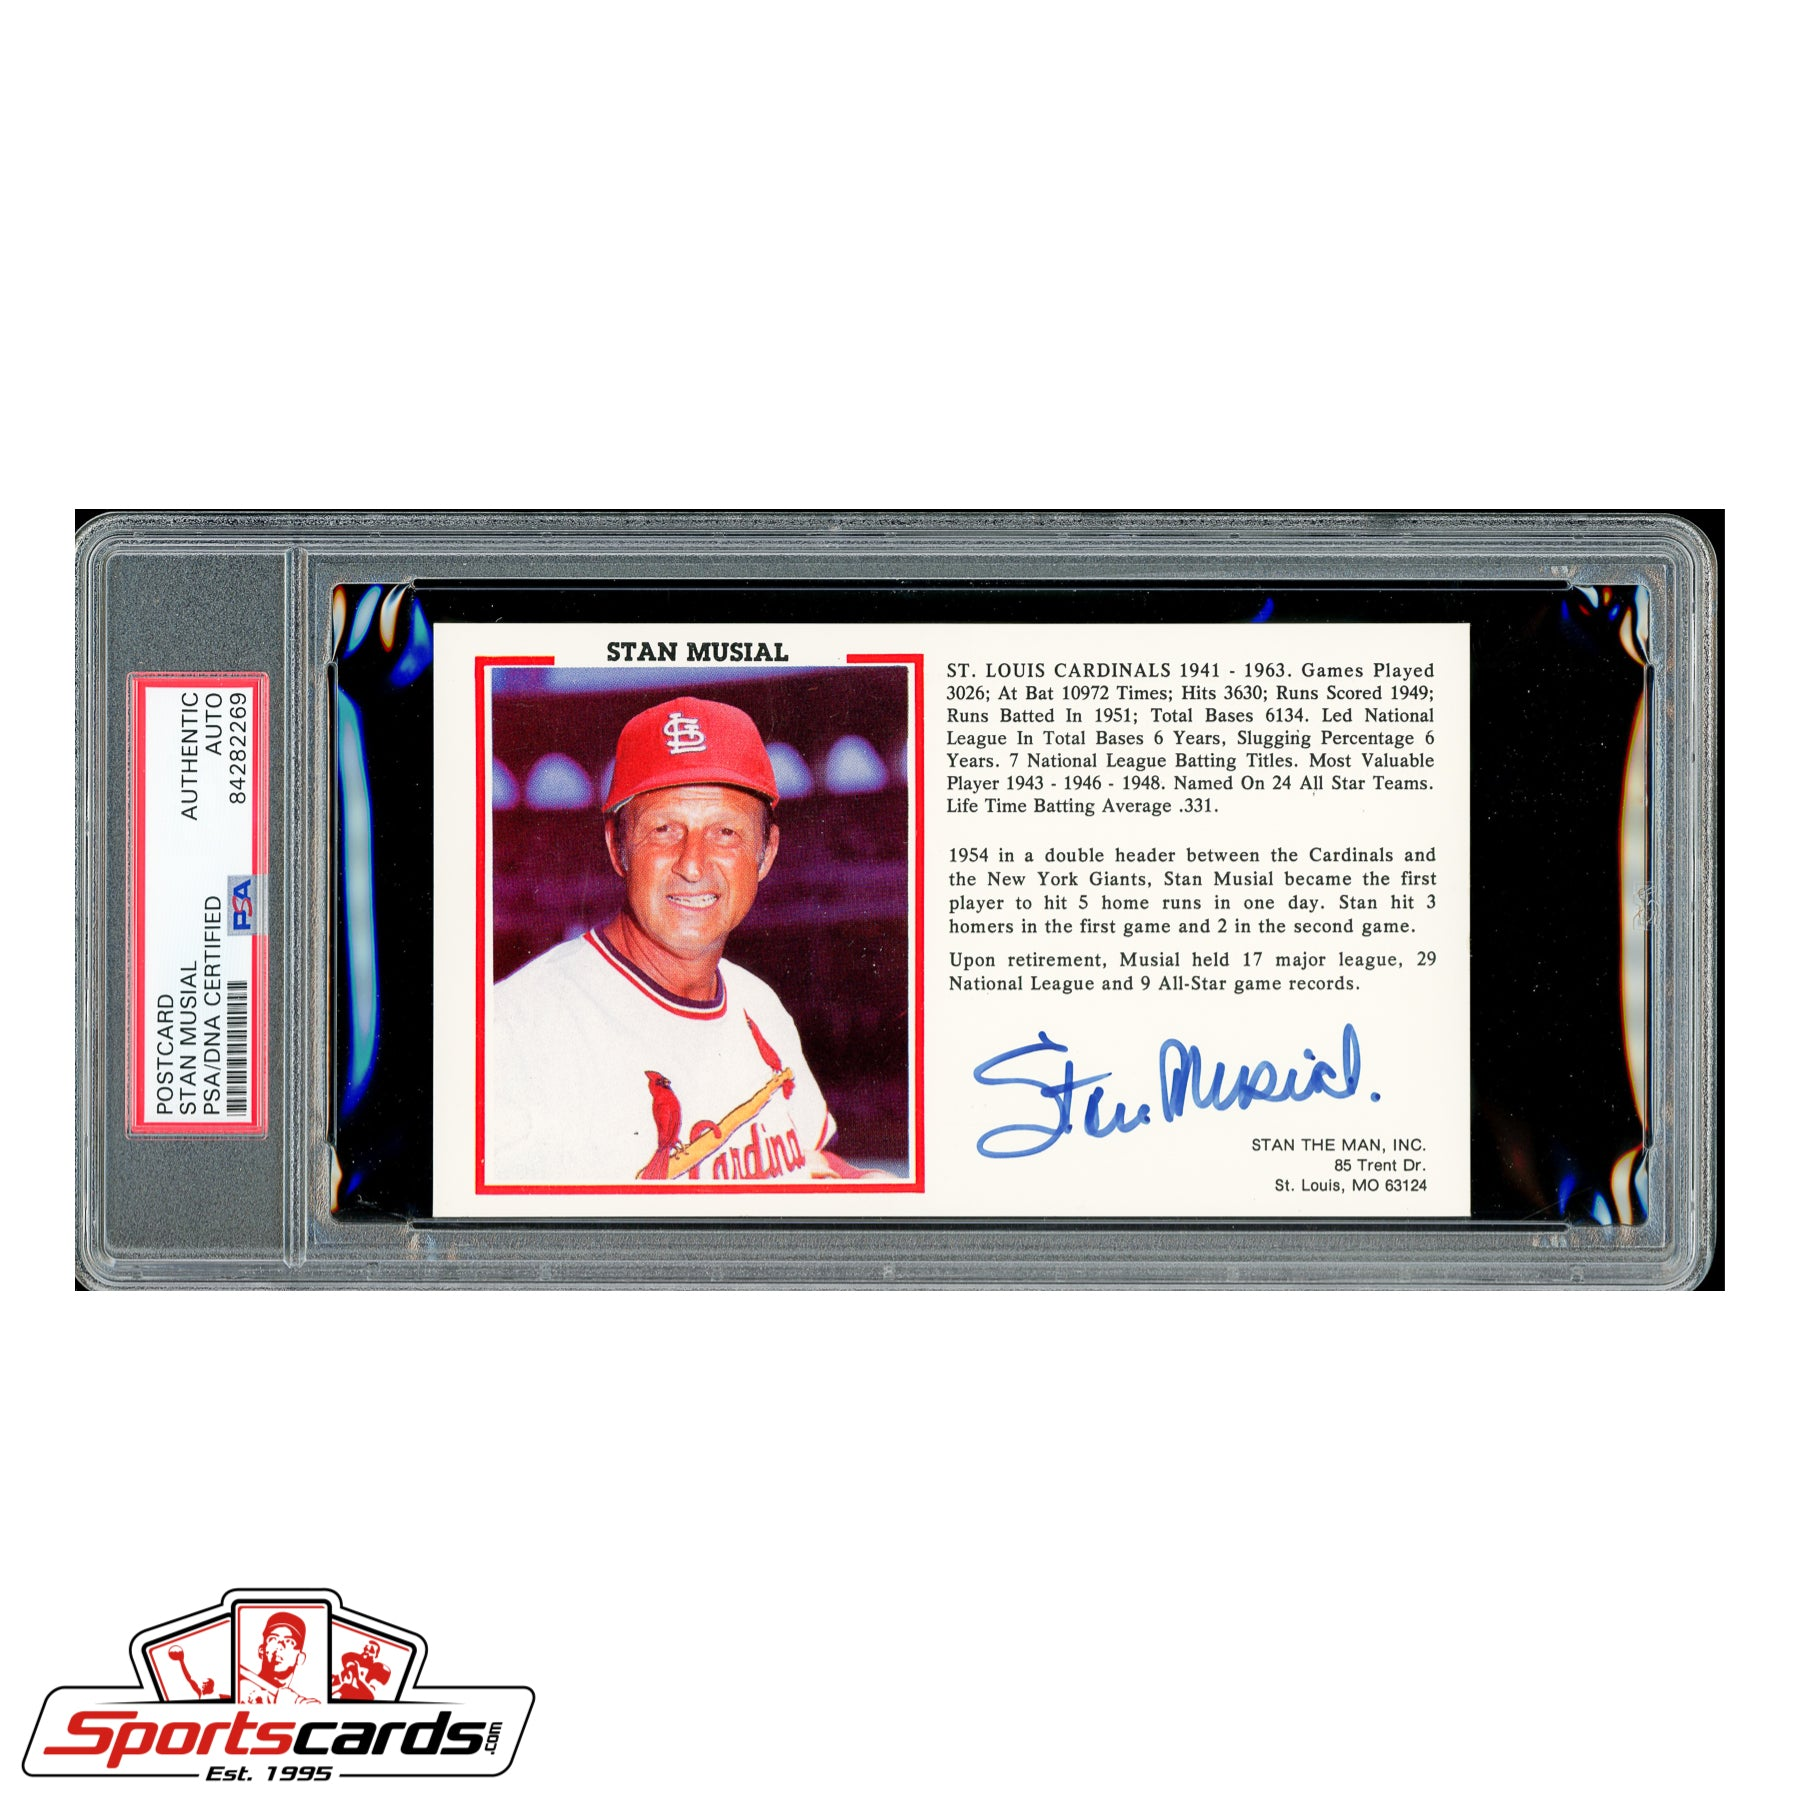 Stan Musial Signed Auto Career Highlights Postcard - PSA/DNA